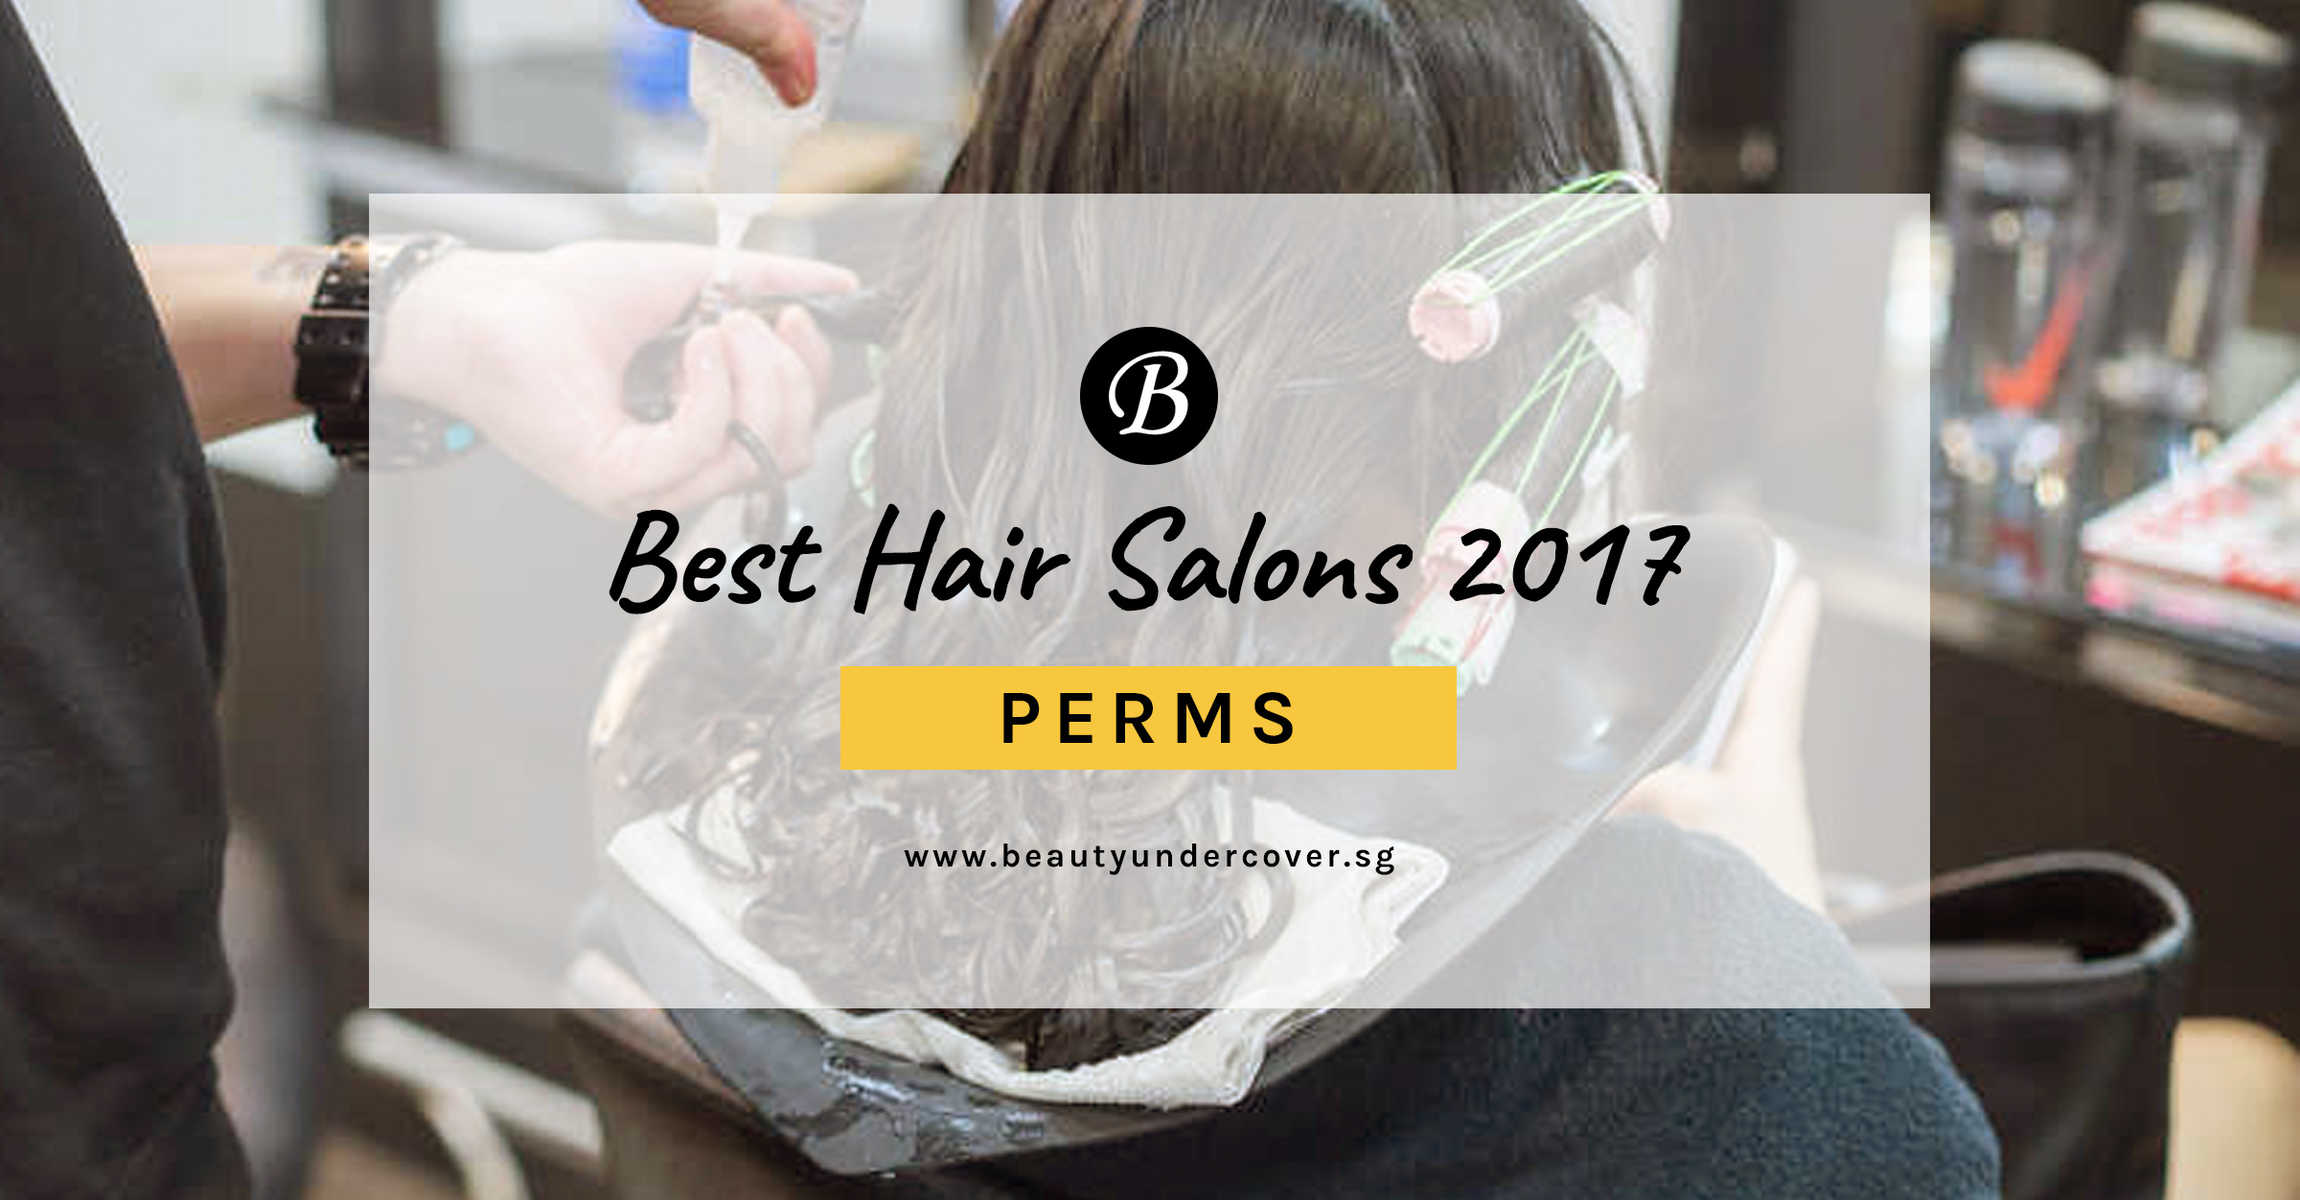 Best Hair Salons for Perm